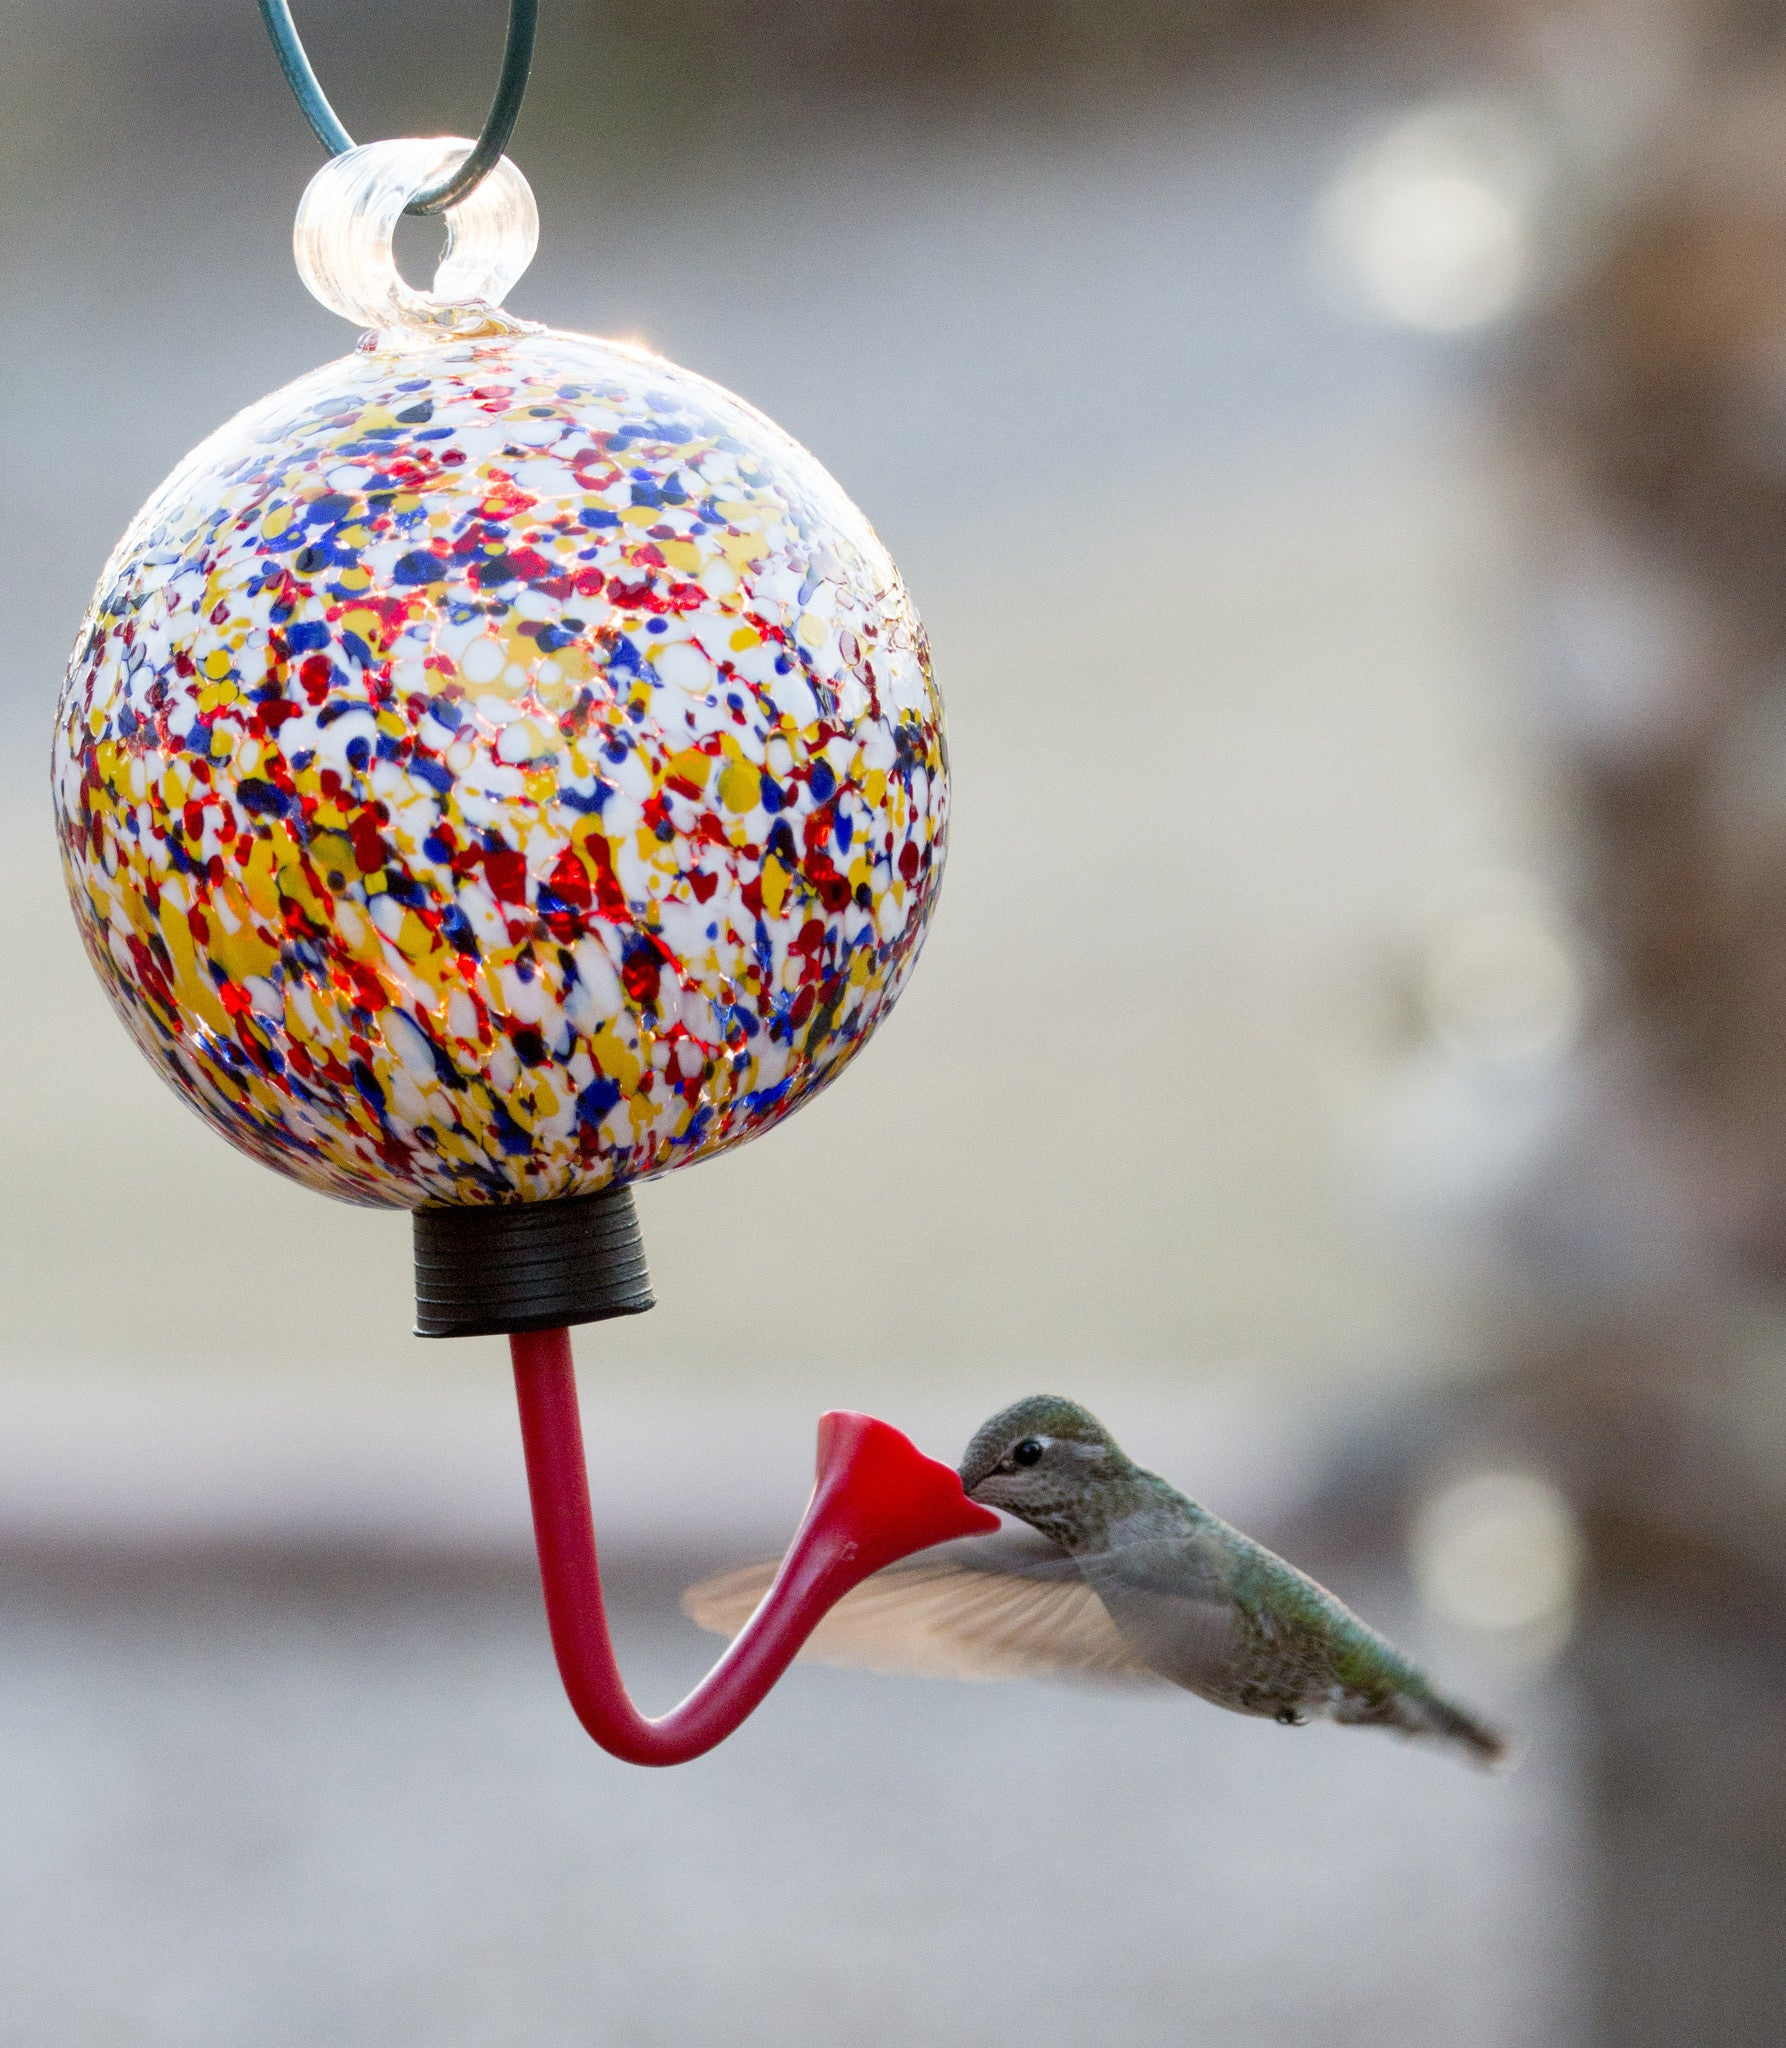 feeder real p feeders red hummingbird wings oz humingbird flower bird wild so